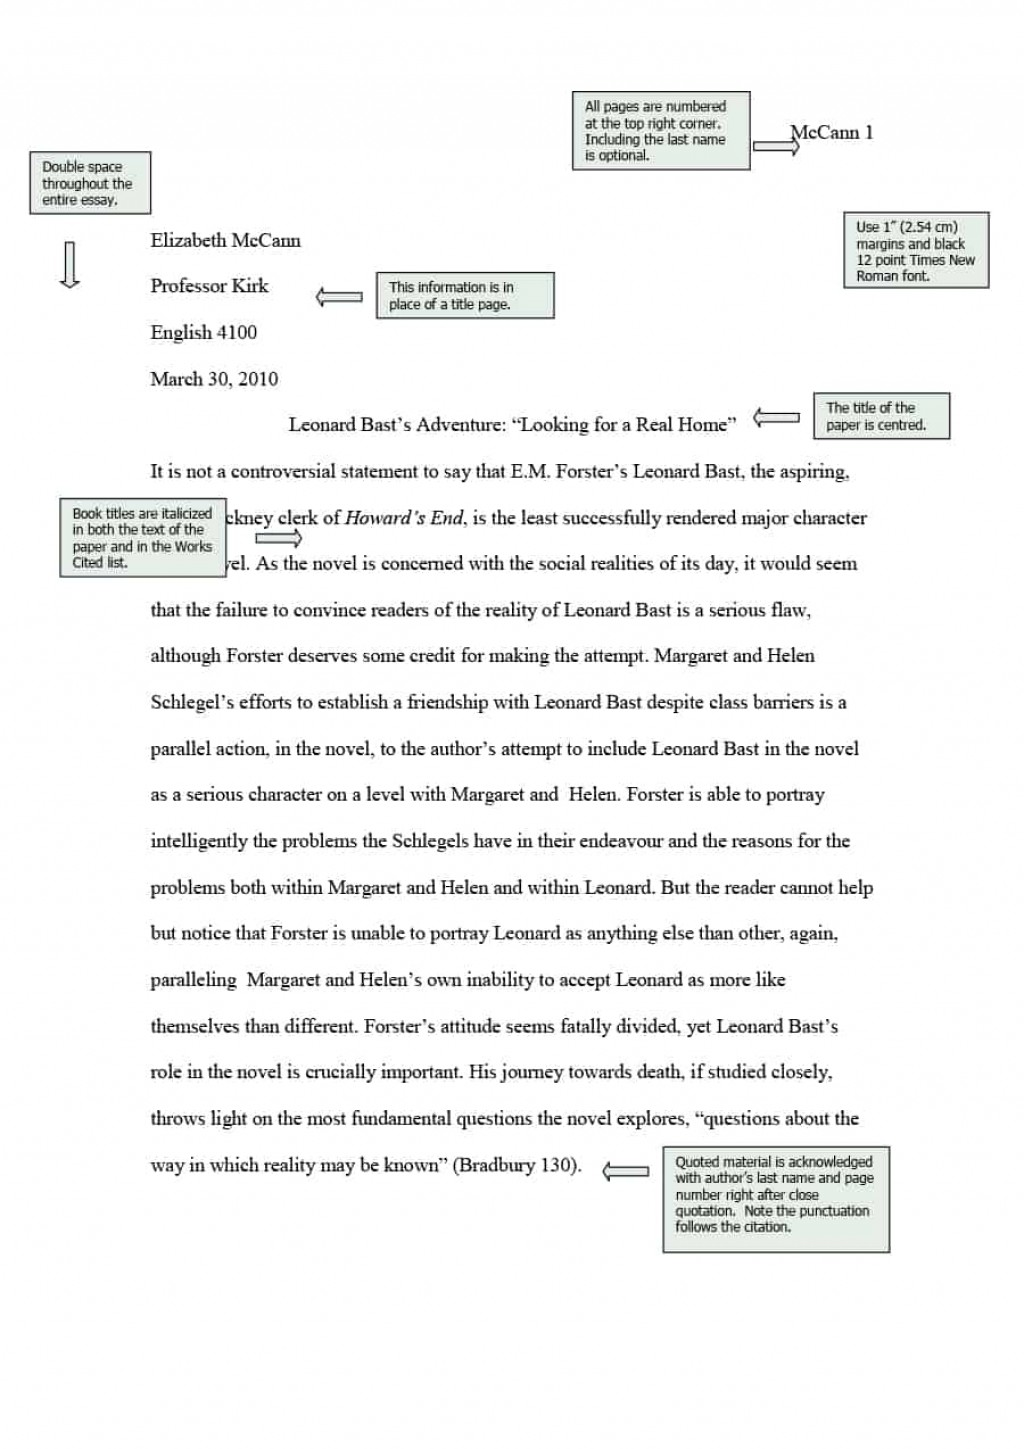 008 Mla Essay Example Format Template Magnificent 2017 In Text Citation Title Page Large